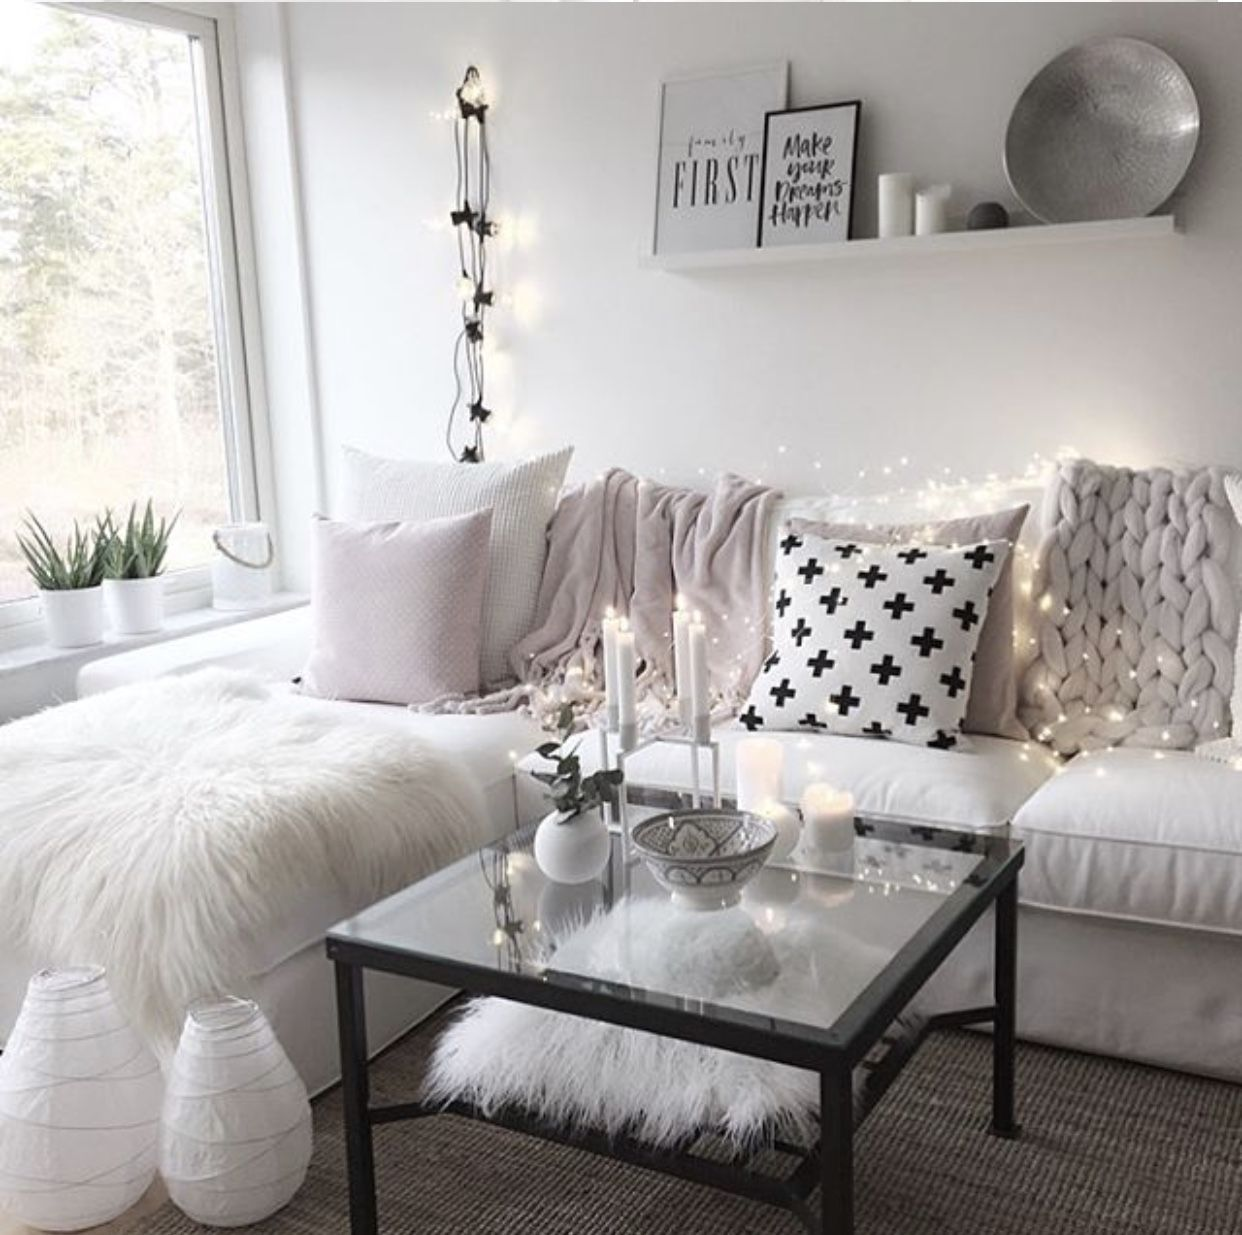 Girly Living Room/apartment Idea